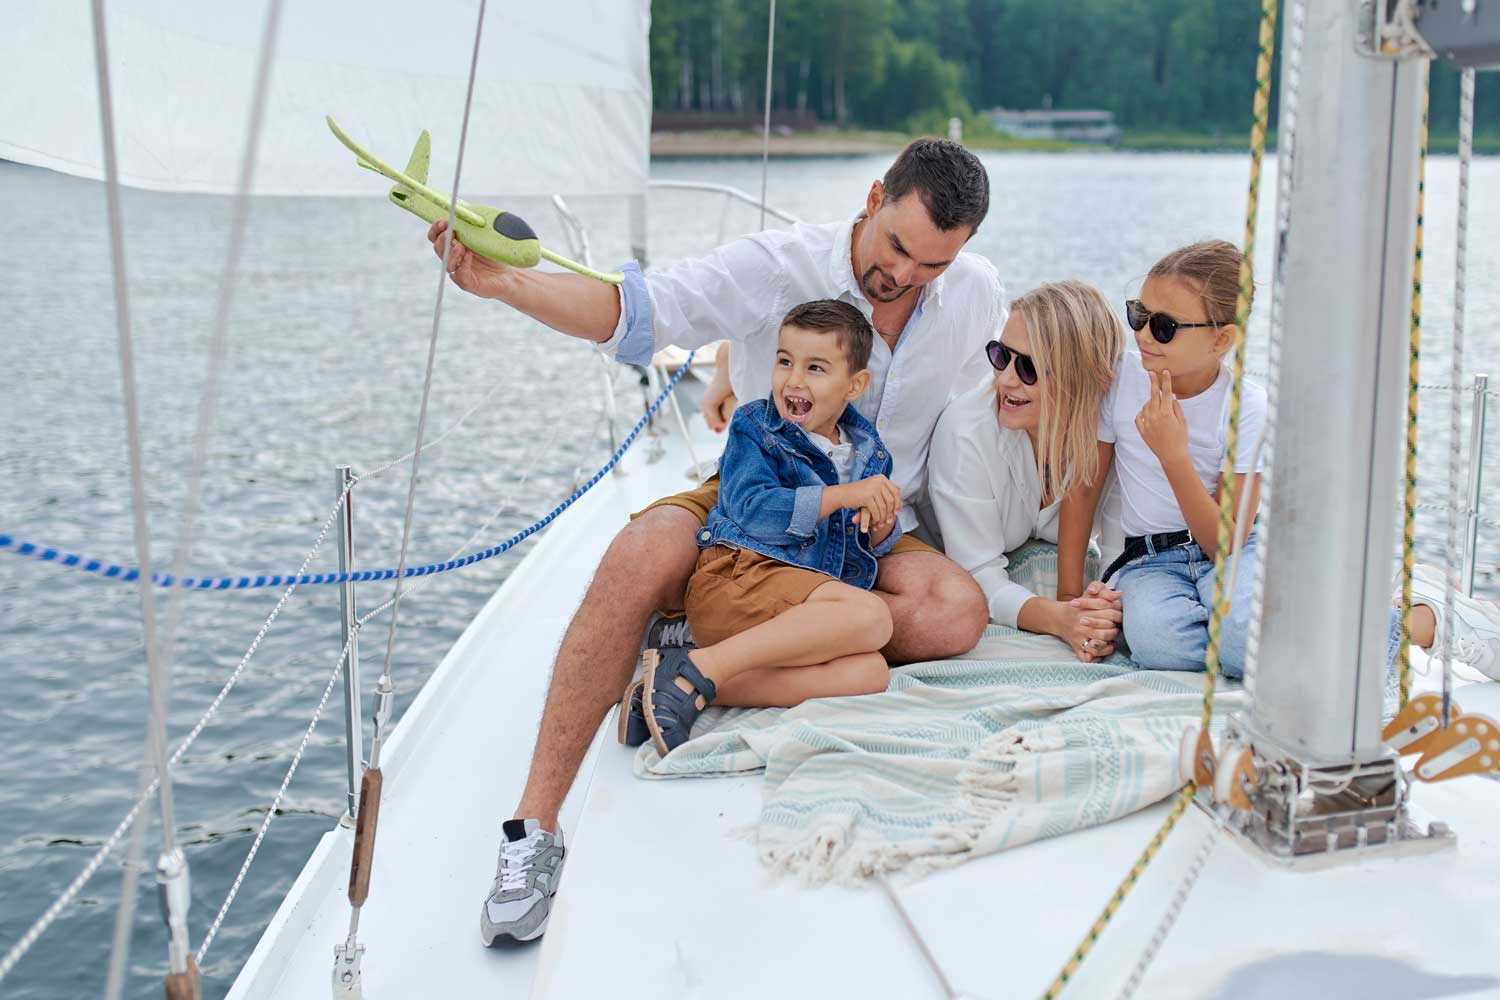 Family on a boat. Father playing with a toy airplane with son, mother and daughter wearing sun glasses